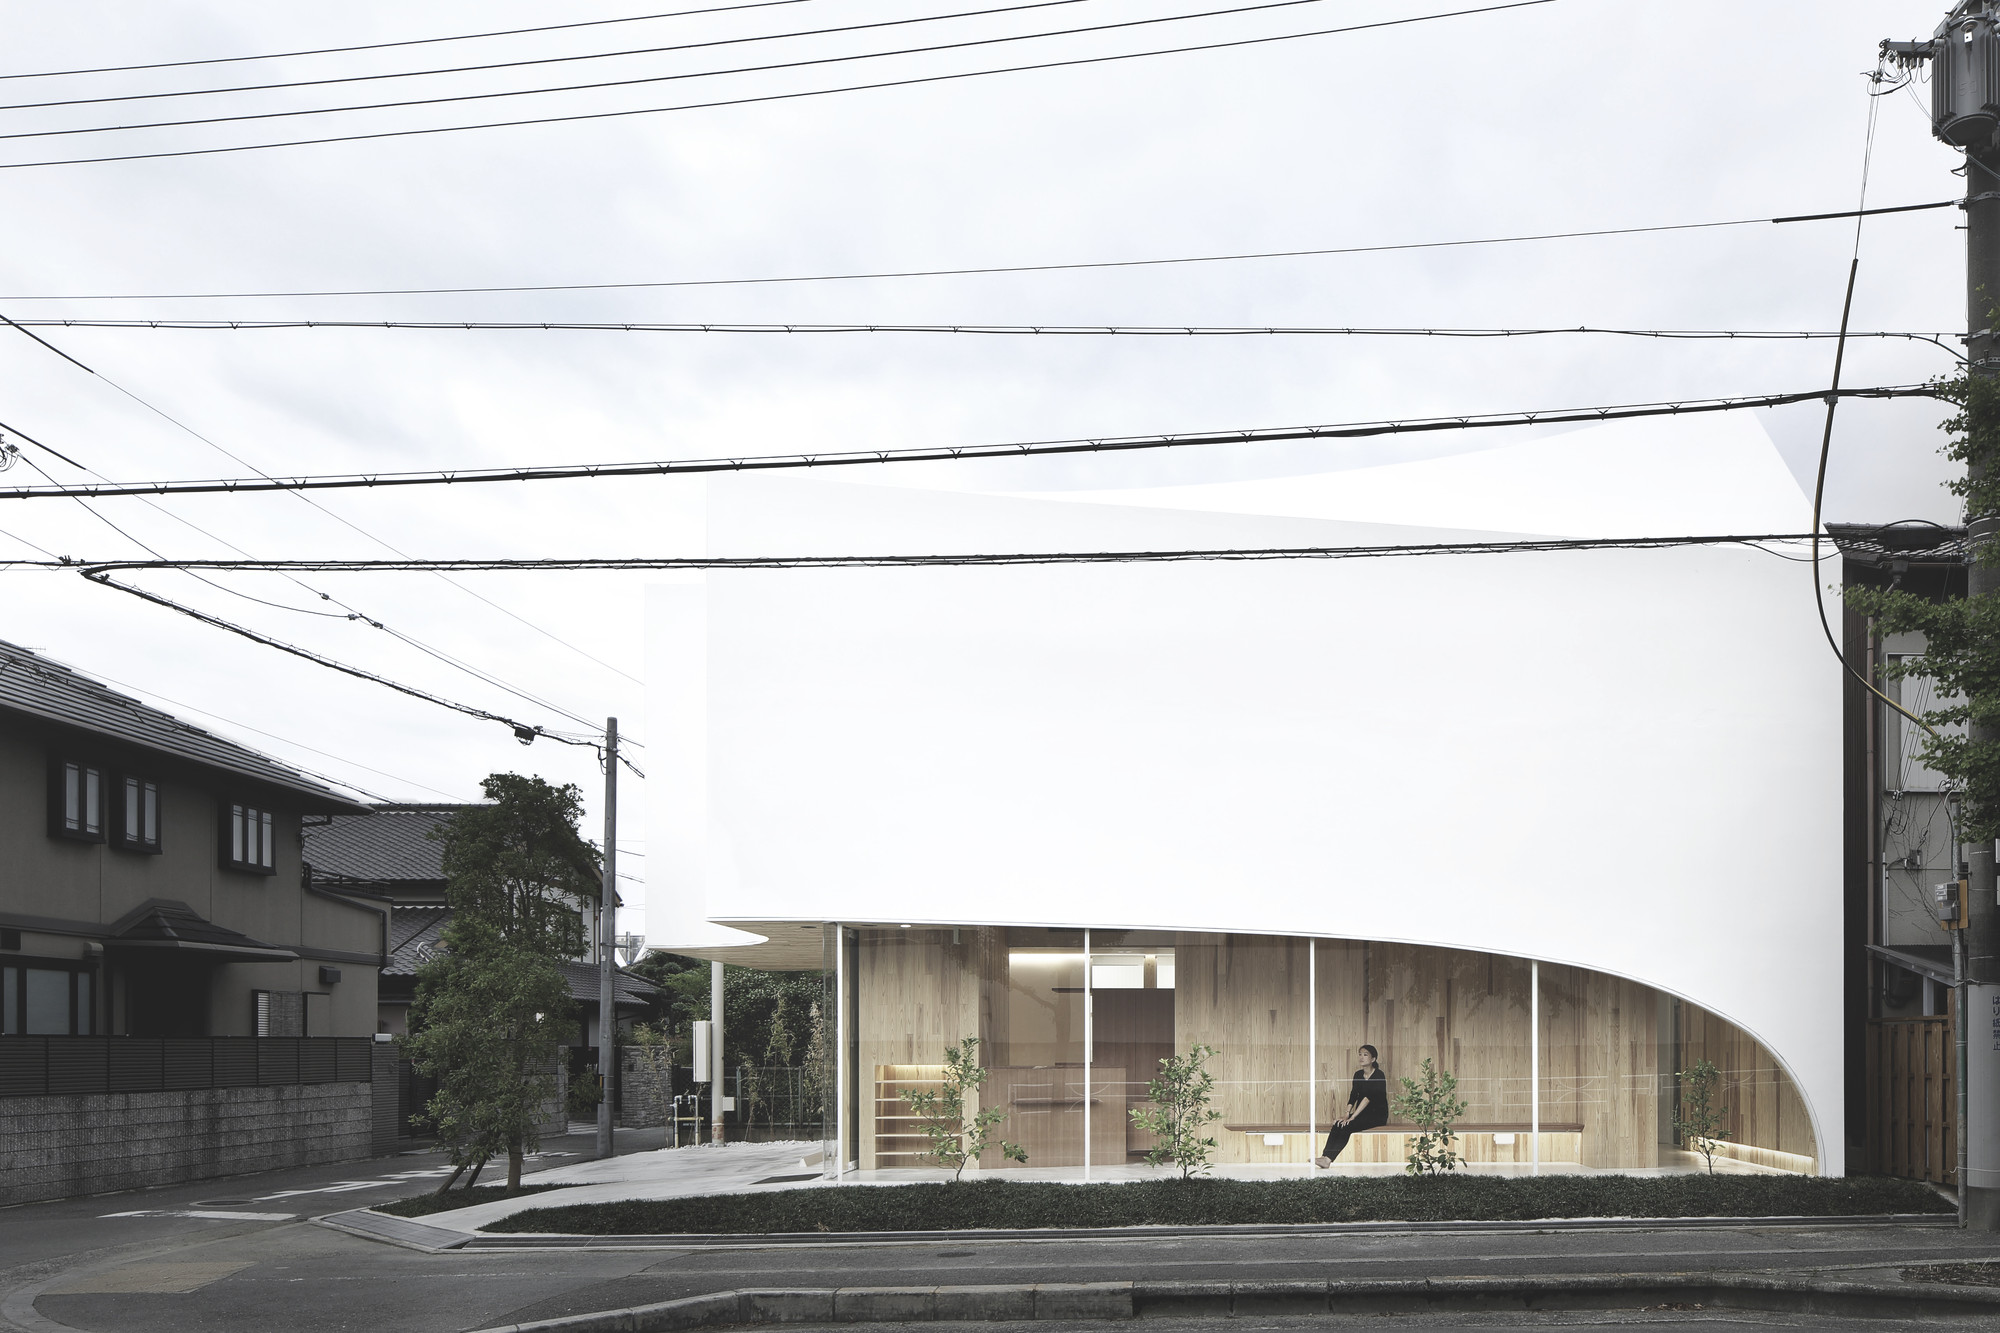 Timber Dentistry / Kohki Hiranuma Architect & Associates, © Satoshi Shigeta